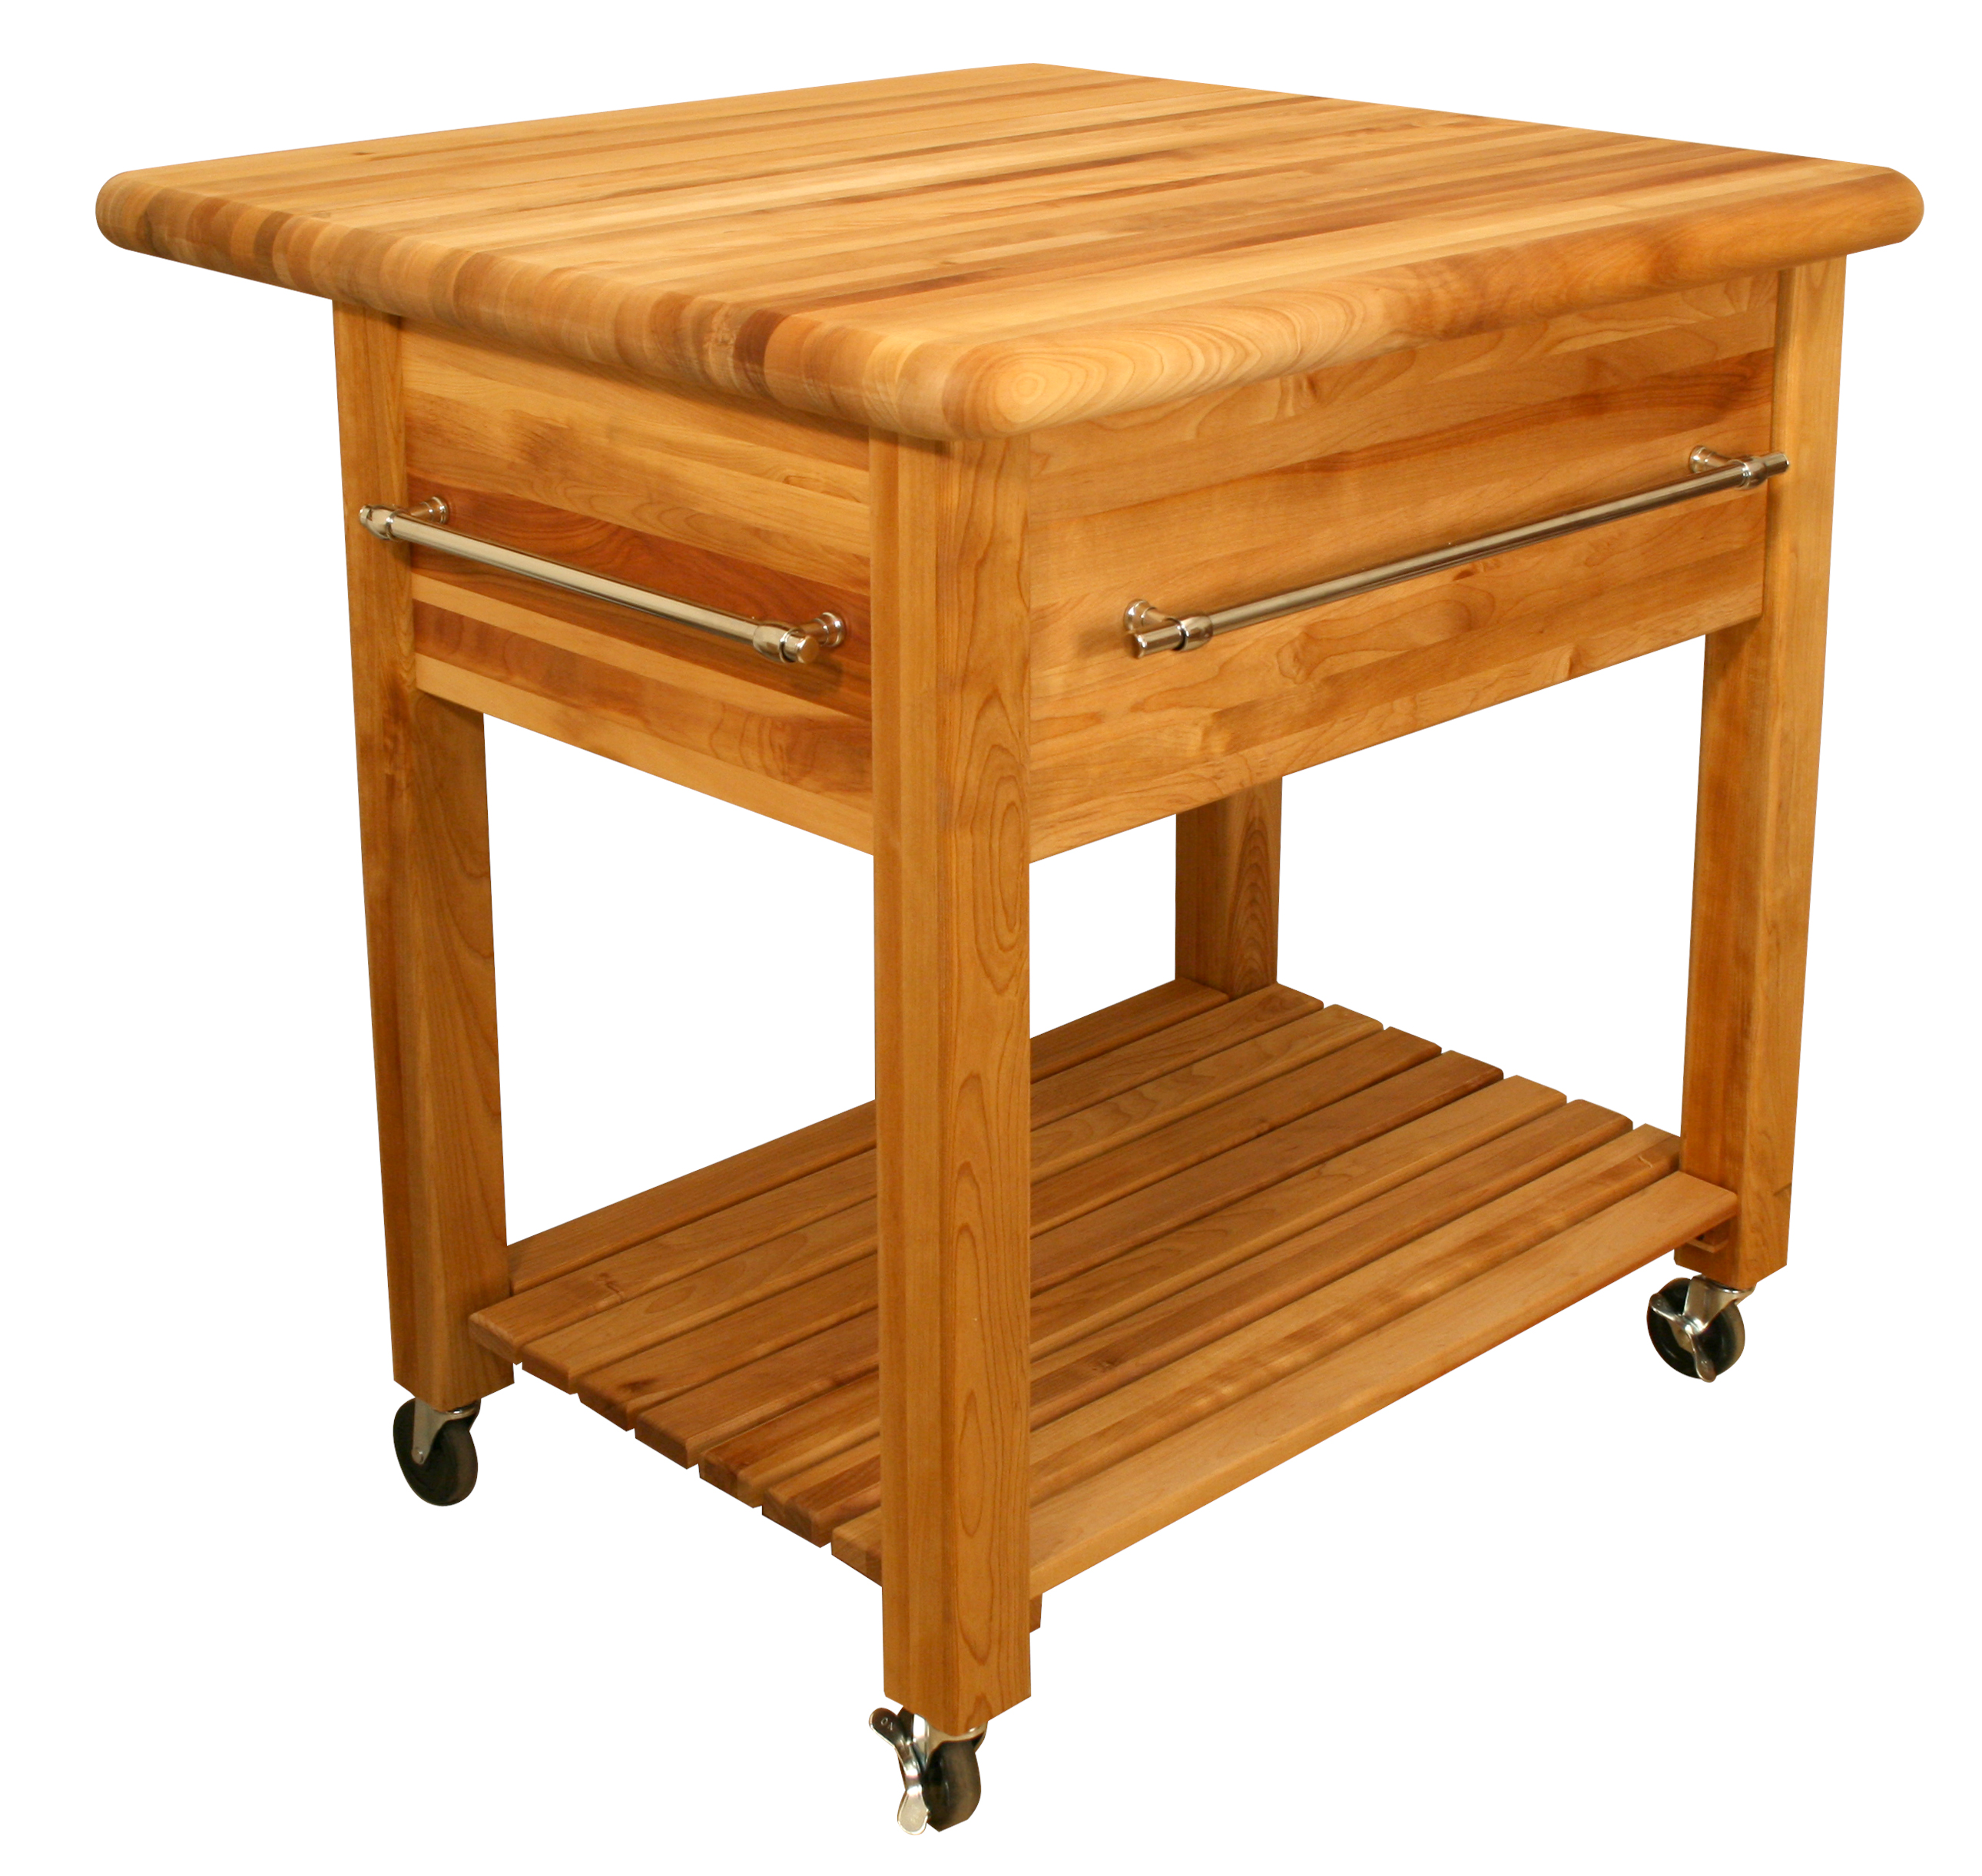 Butcher Block Kitchen Carts | John Boos | Catskill